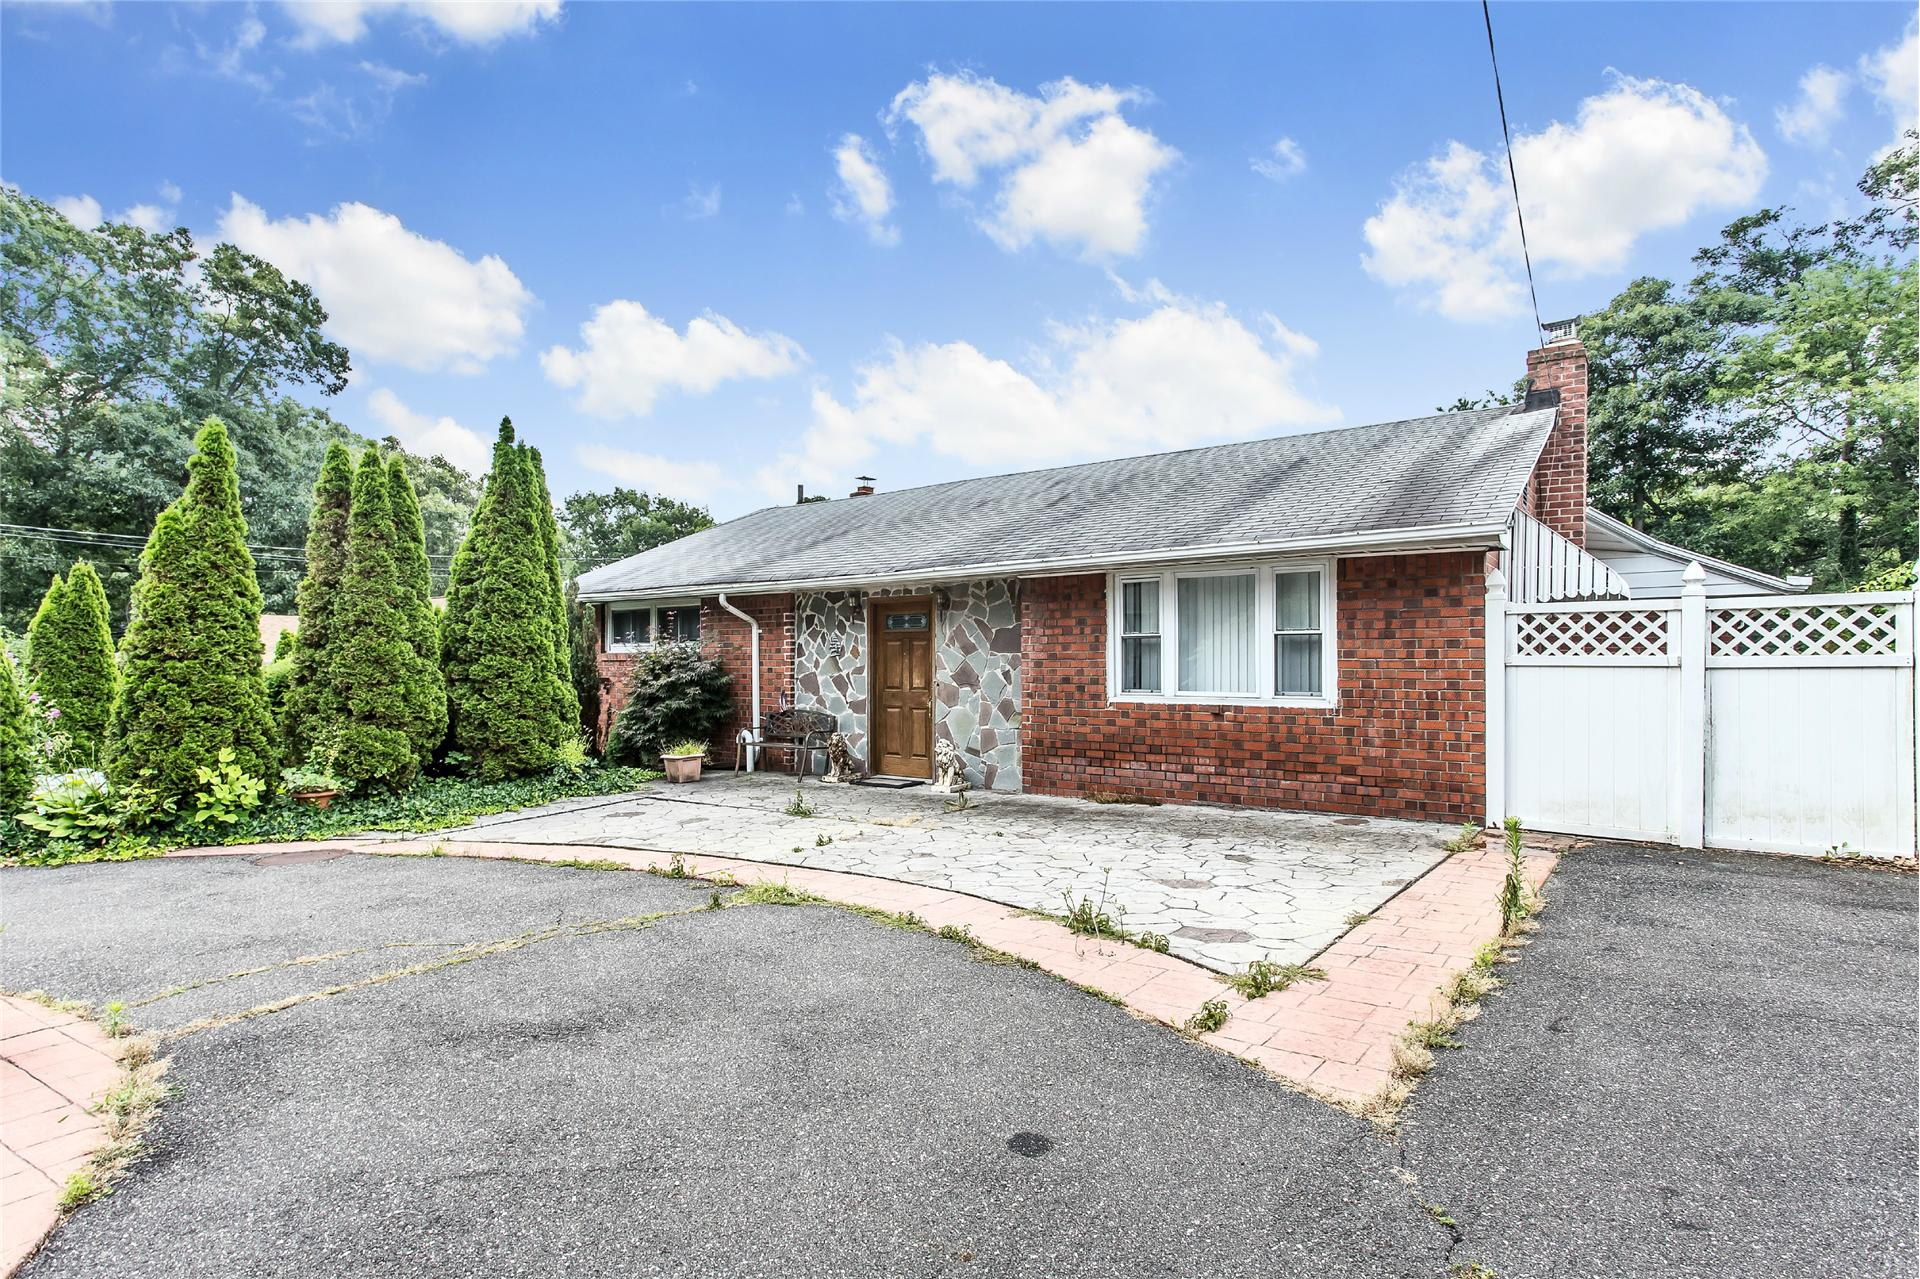 Single Family for Sale at 66 Luyster St Huntington Station, New York 11746 United States